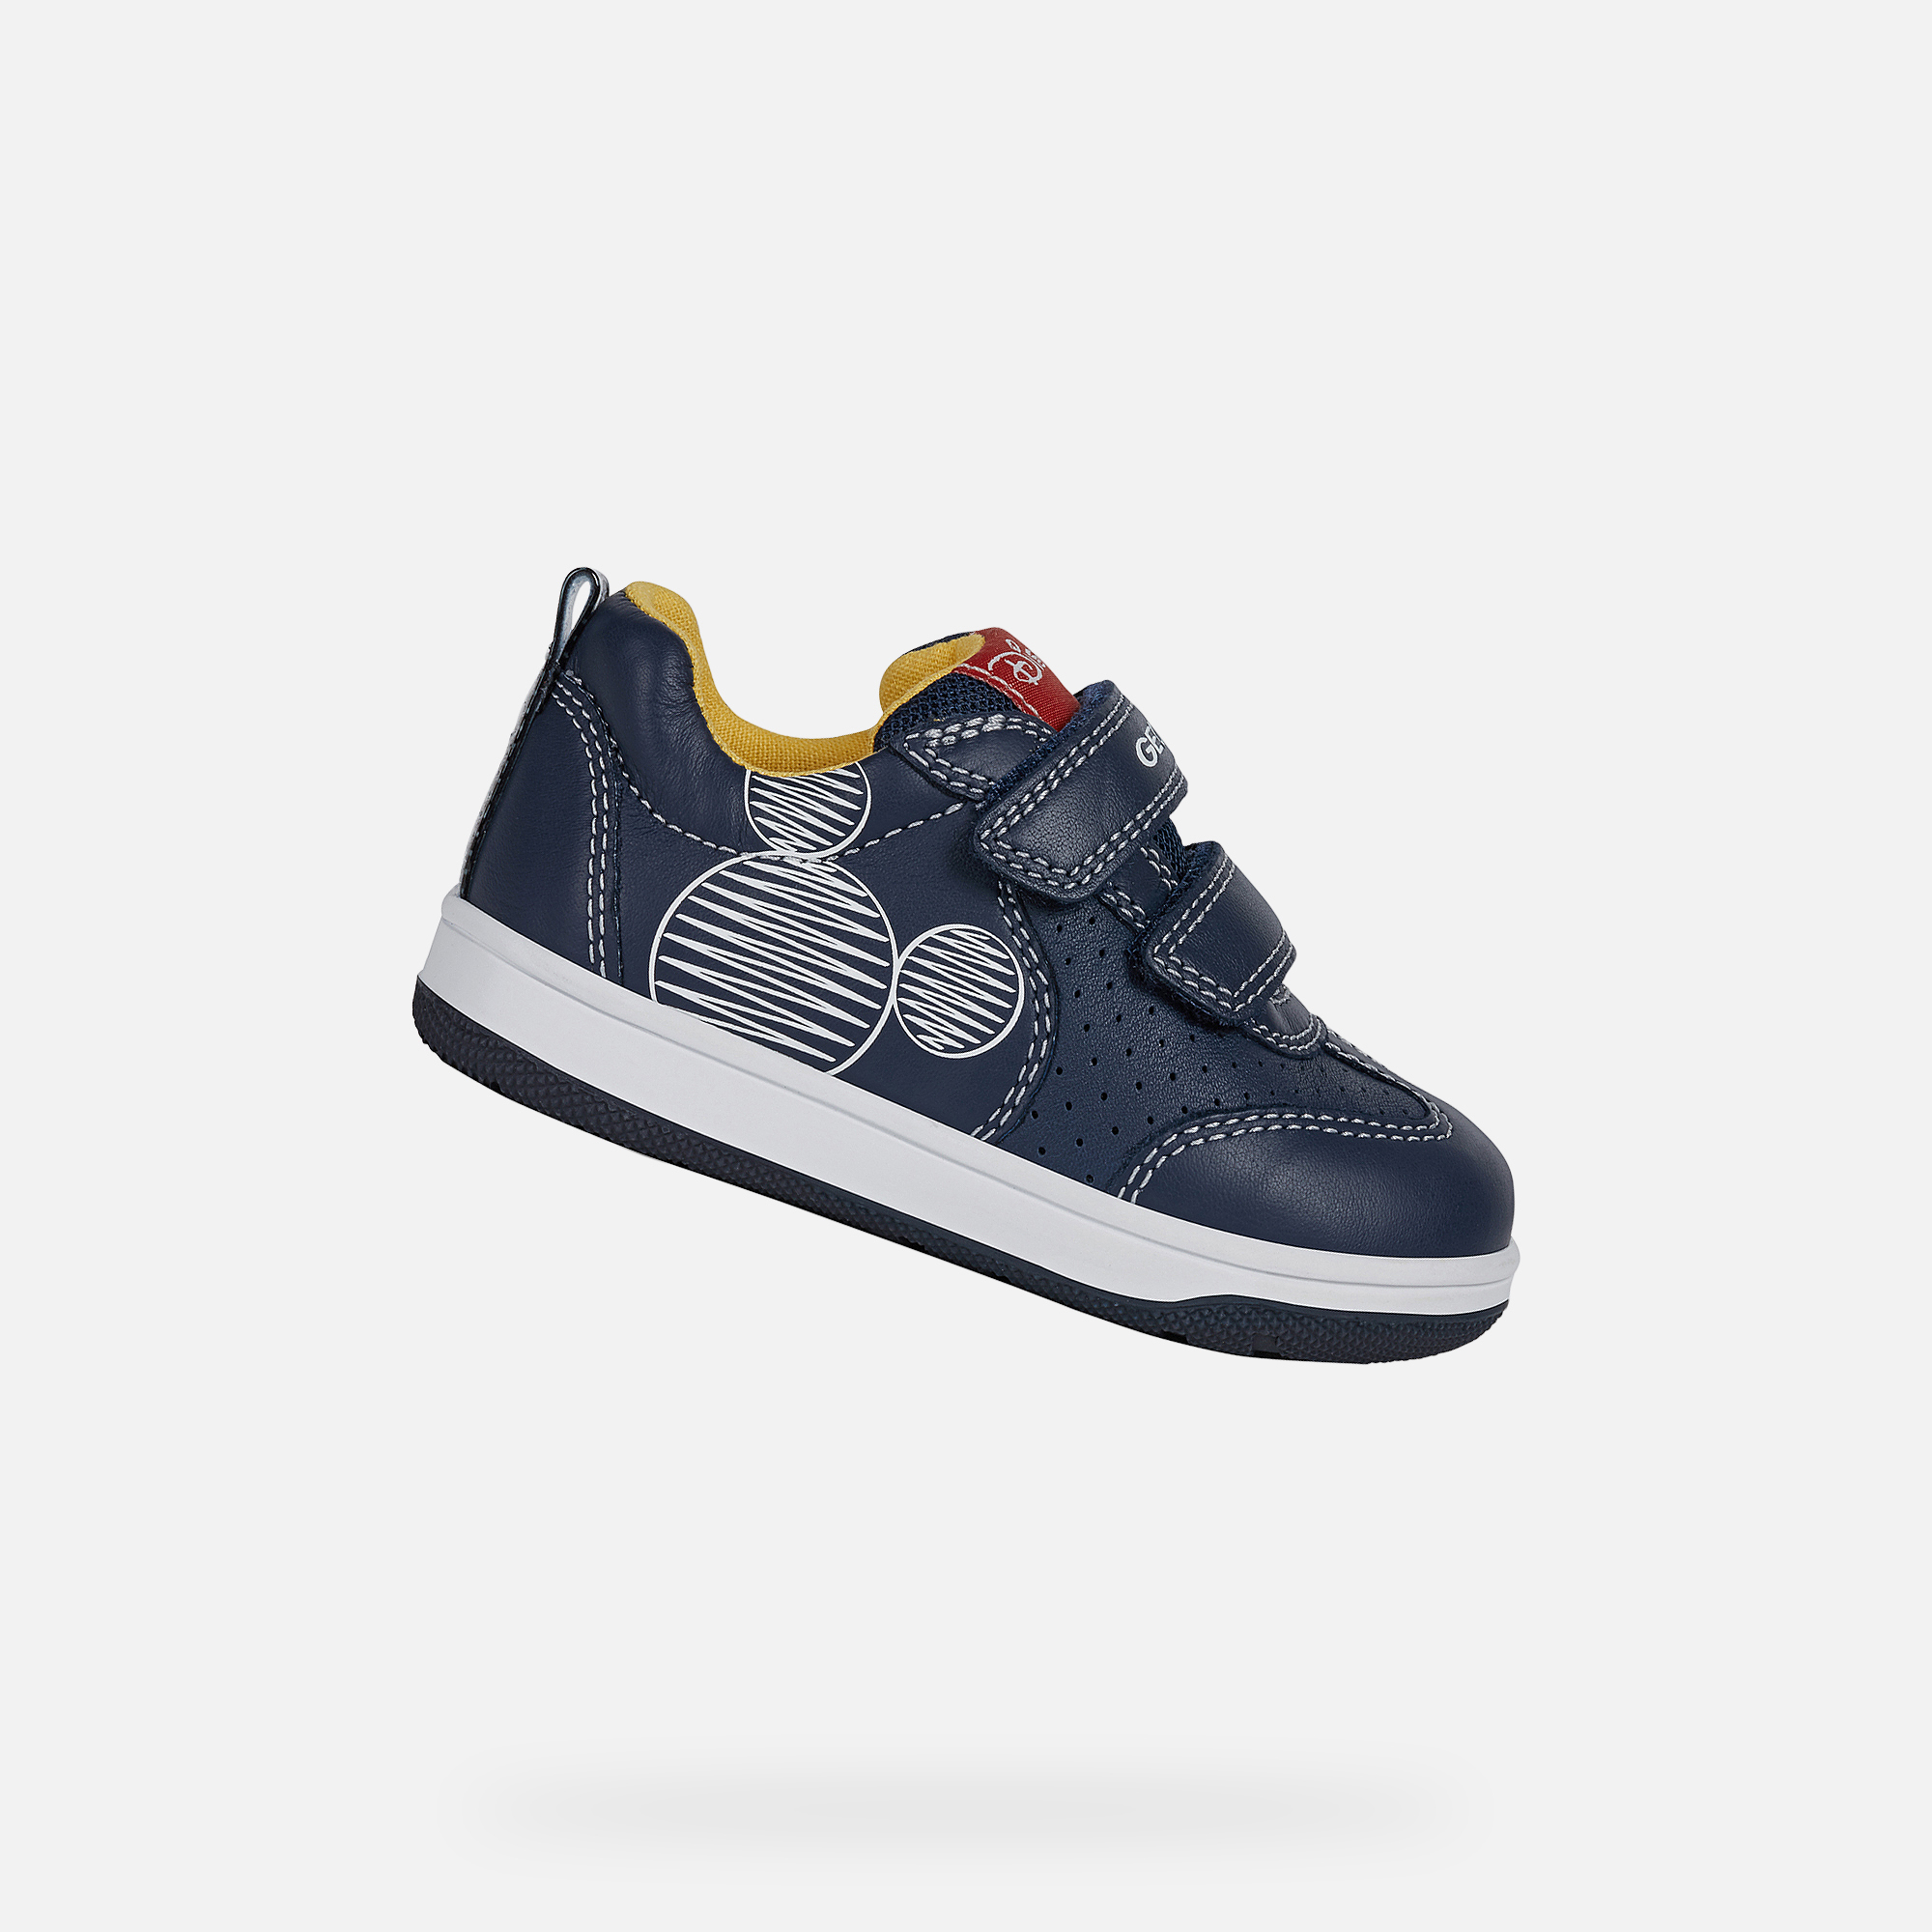 Geox NEW FLICK BABY JUNGE: Navyblau Sneakers | Geox ® SS 20 HuZhz